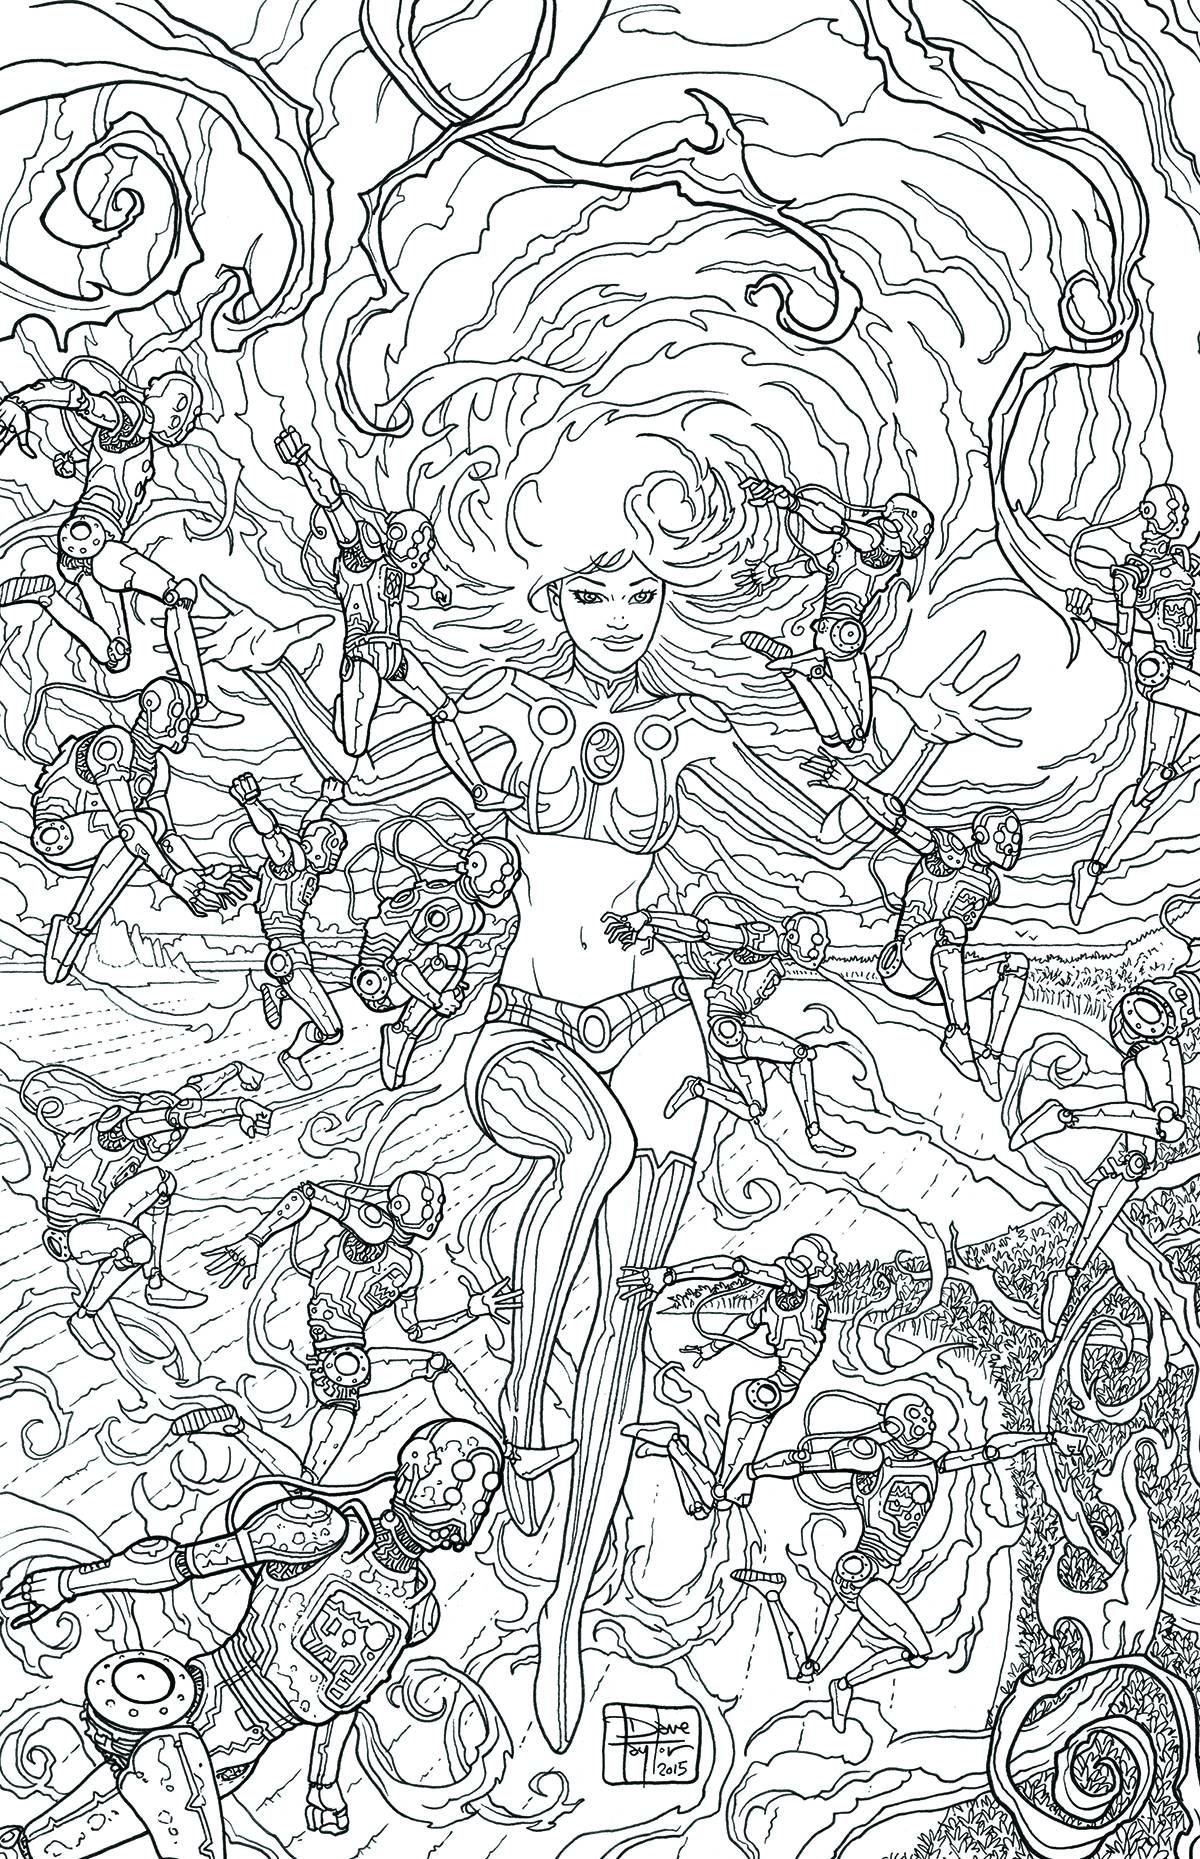 Shop for Starfire 8 Adult Coloring Book Variant Cover